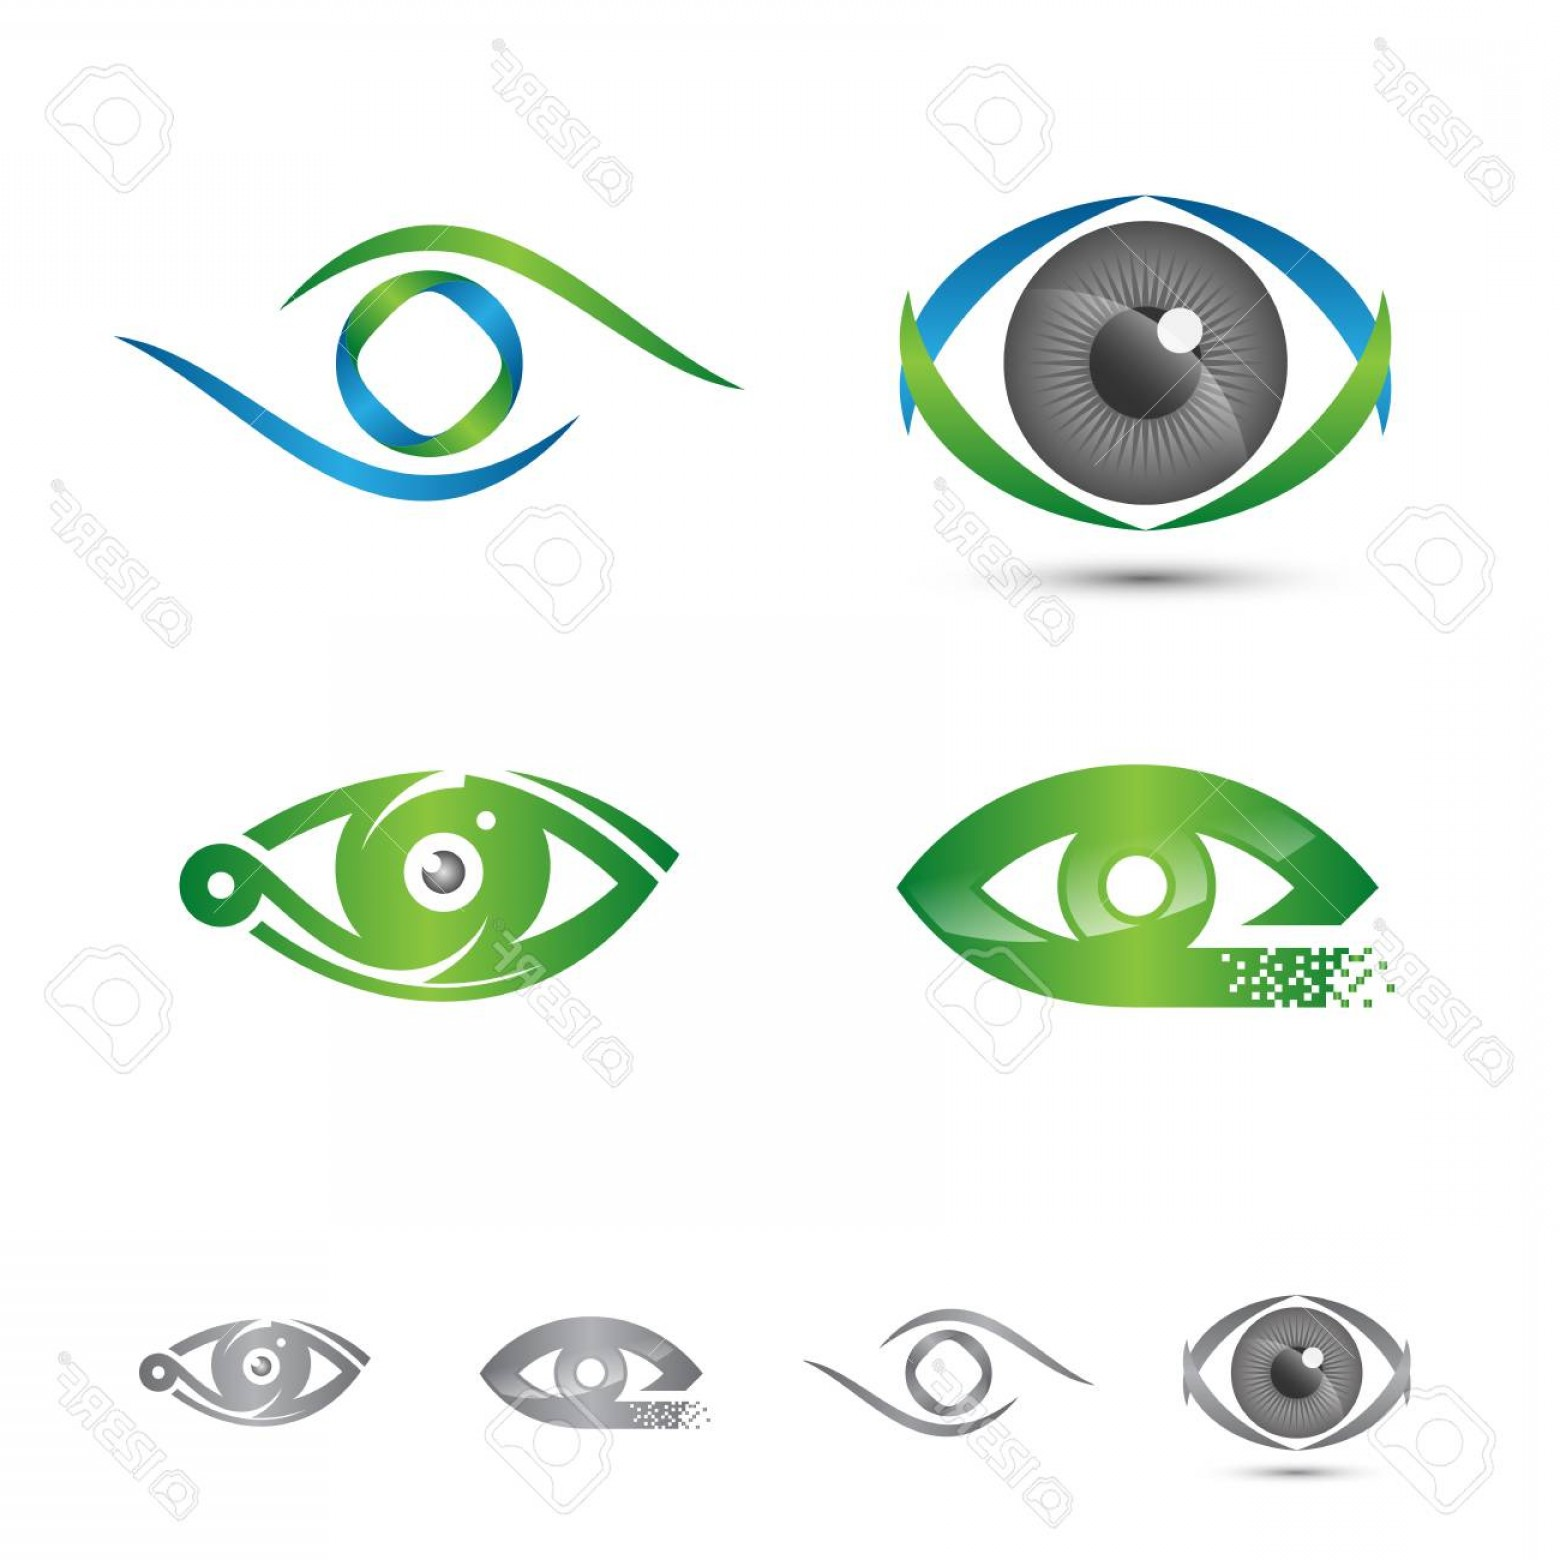 Eye Vector Logo: Photostock Vector Set Of Logos And Icons Of Eye Vector Logo Concept Colorful Graphic Vector Illustration Eps Eps